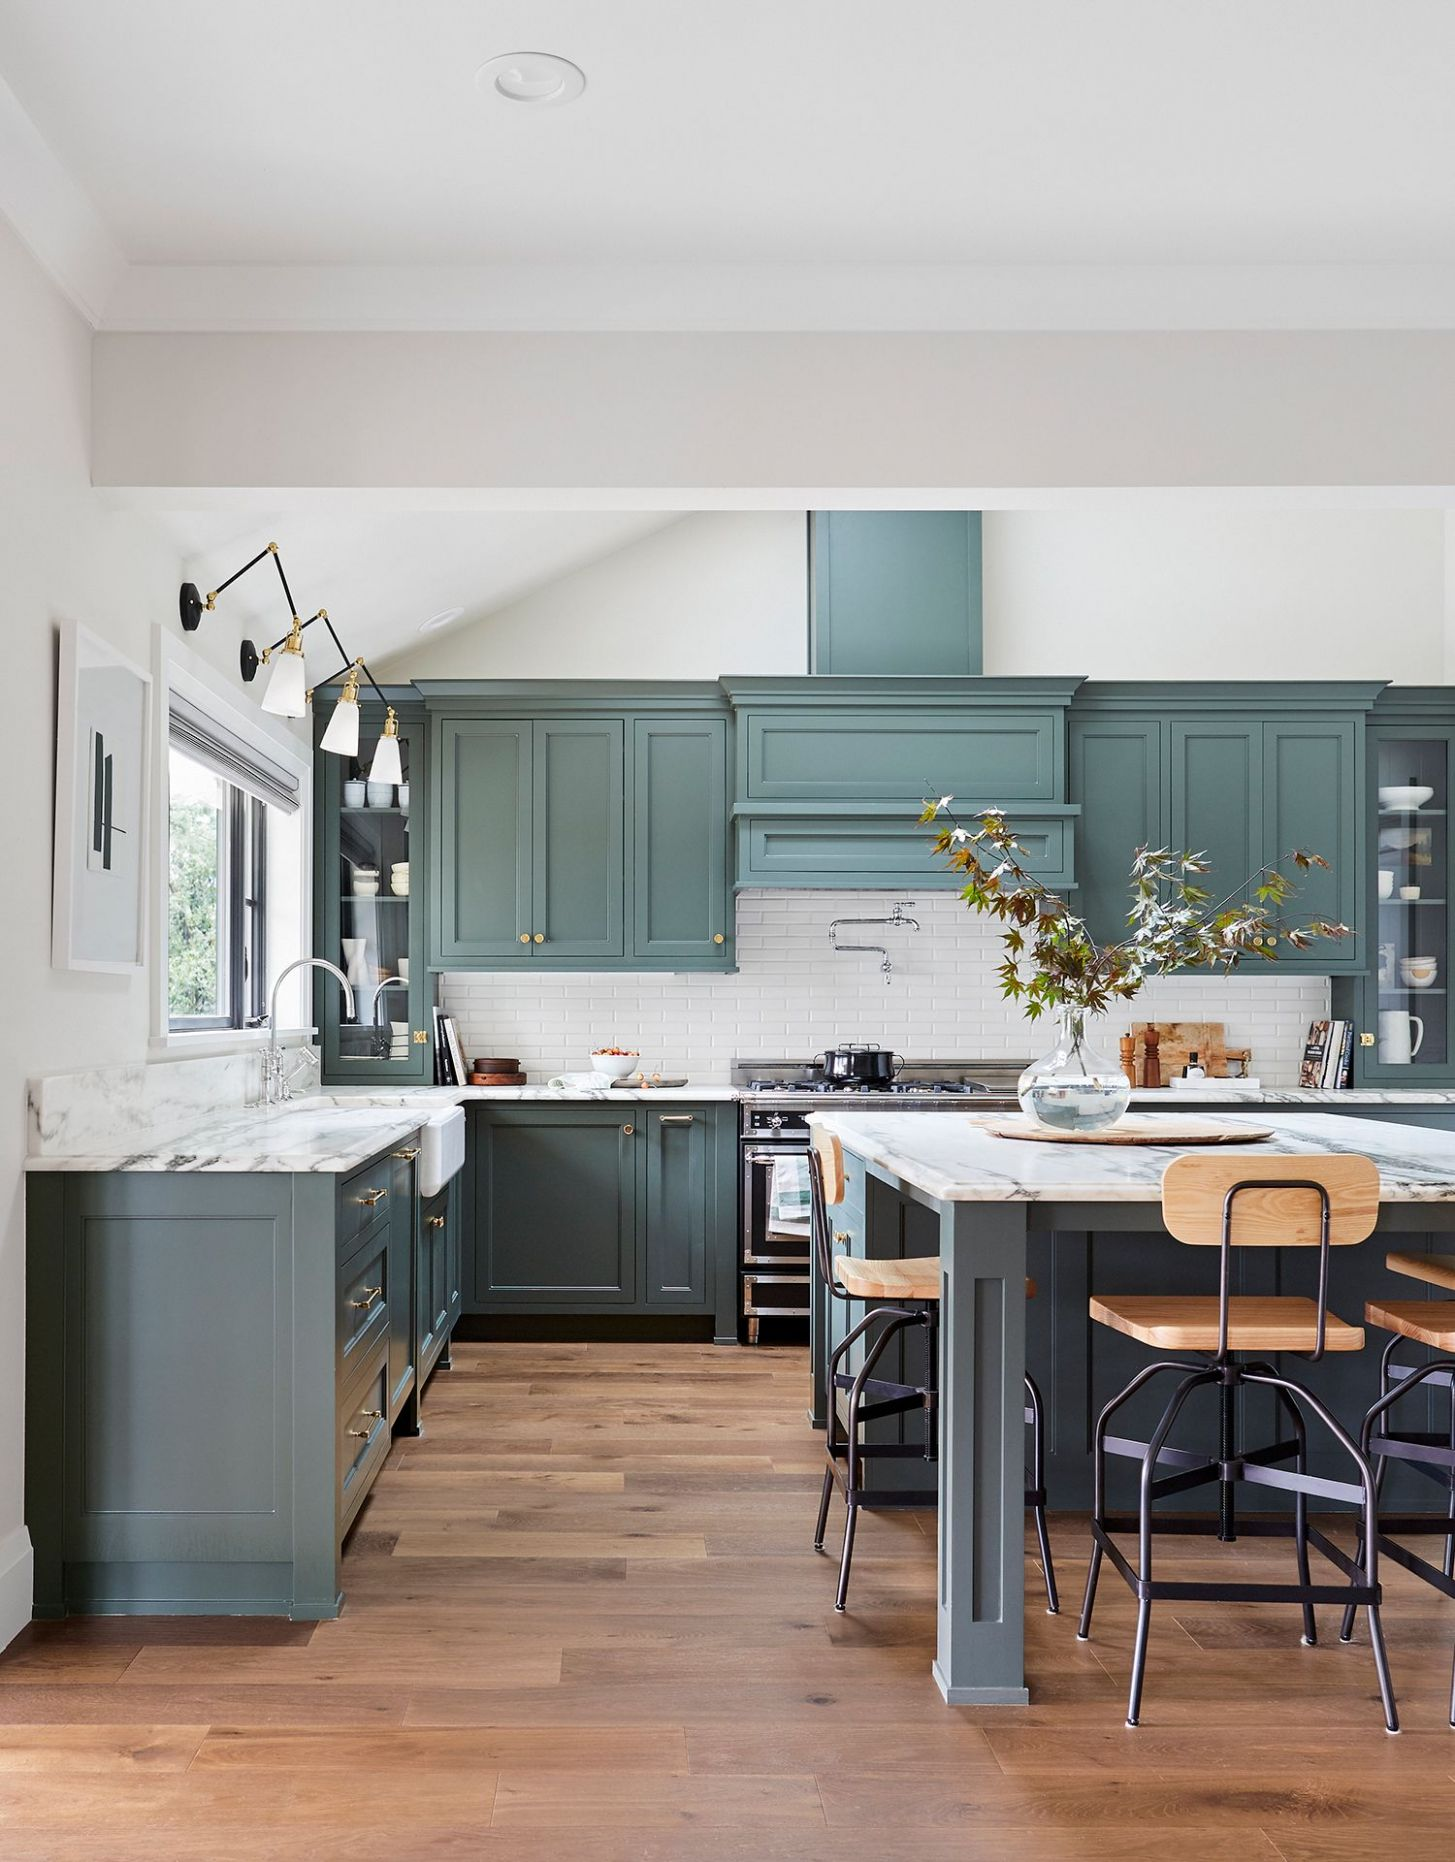 Kitchen Cabinet Paint Colors for 11 - Stylish Kitchen Cabinet ...